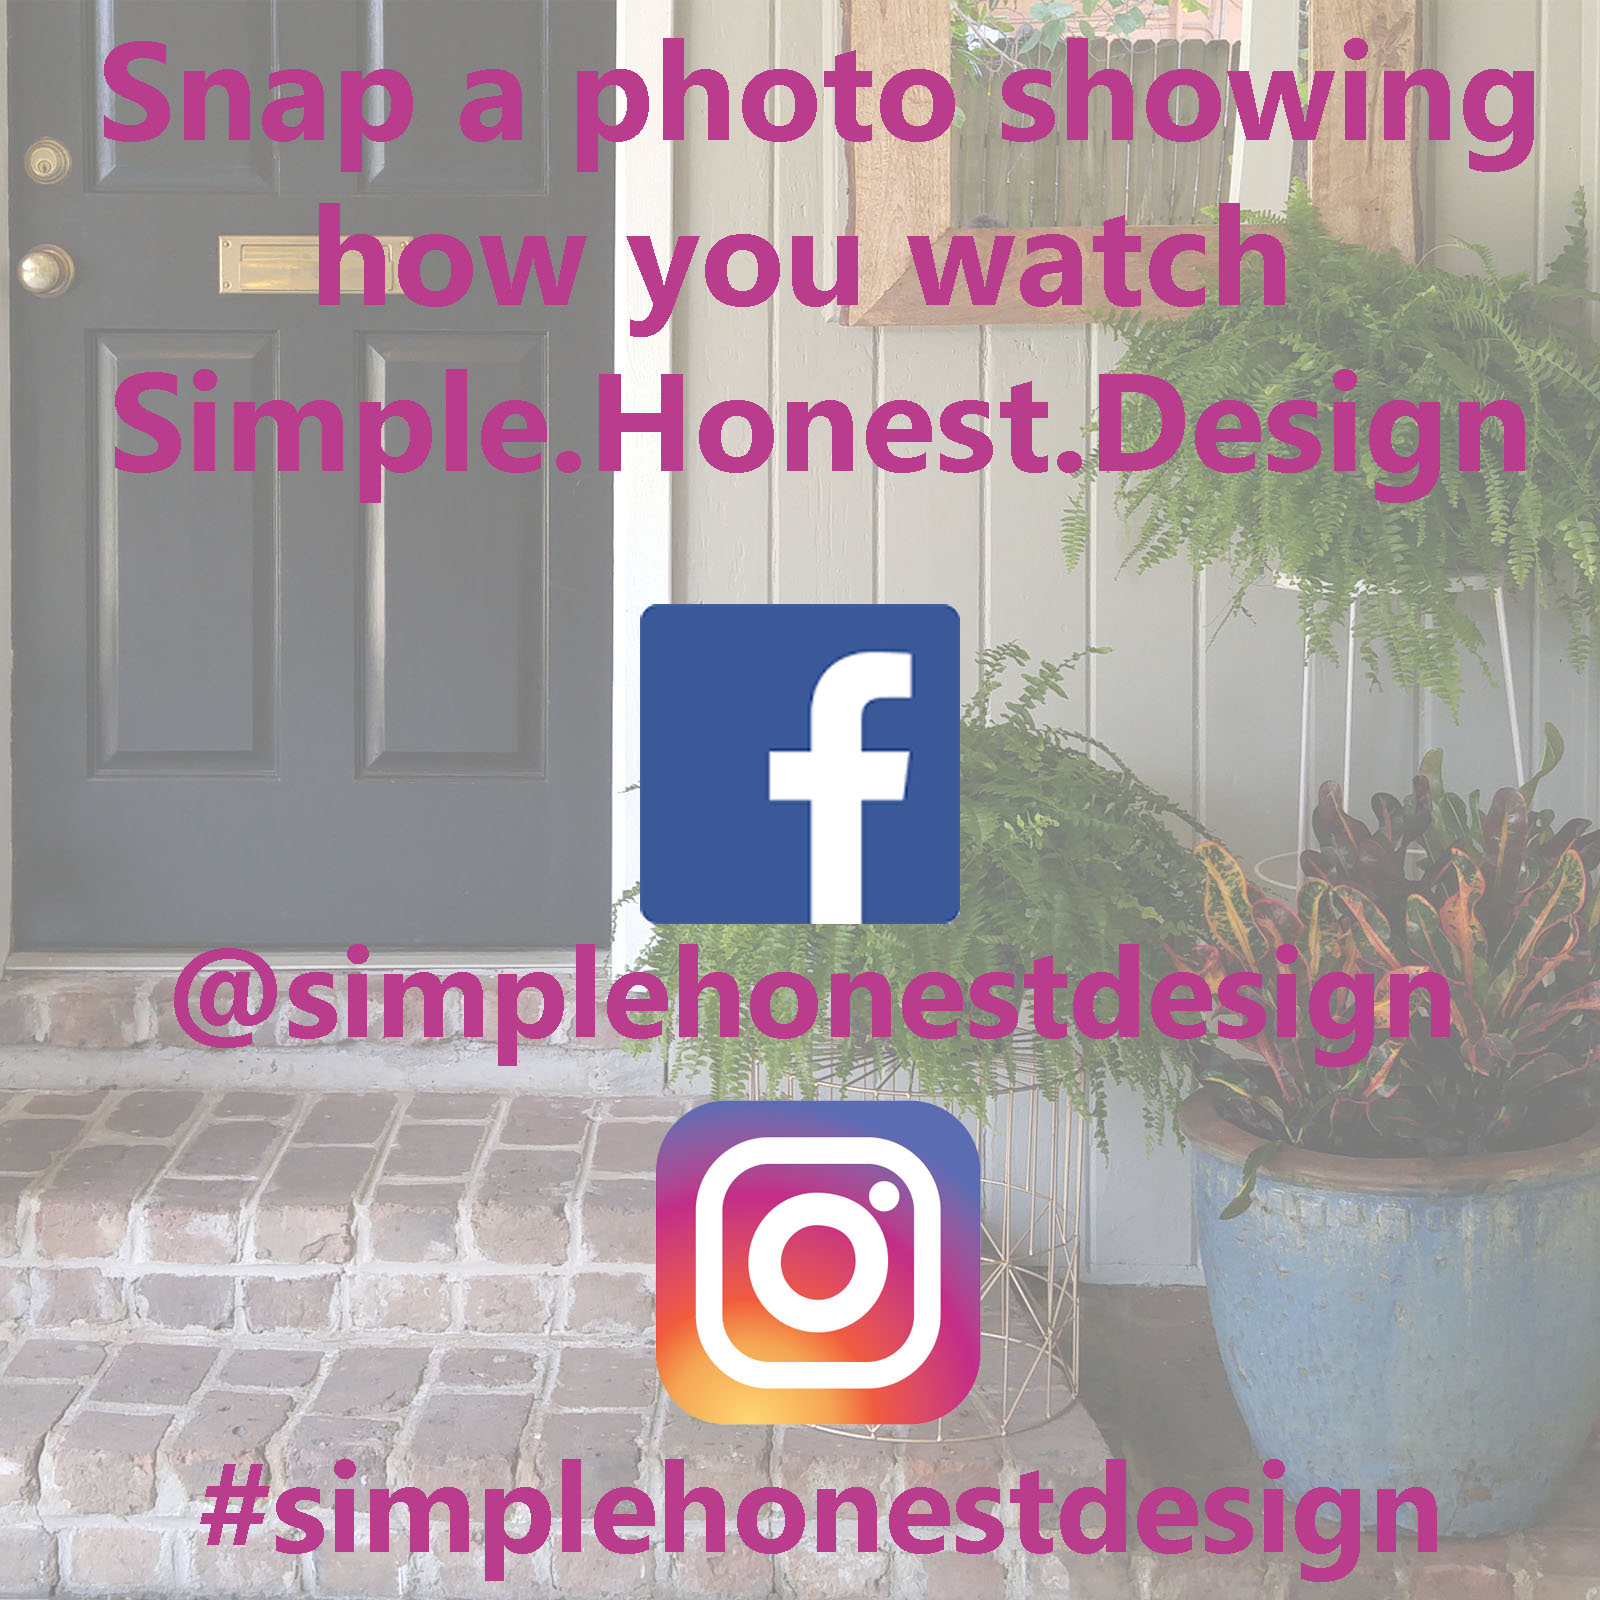 Take a photo of how you enjoy your Simple.Honest.Design. ( I, for one, sit in my smoking jacket in a room built from mahogany walls while I sit in front of a fire. Or in my car waiting for kids at carpool. Same thing right?) Then, post it to Facebook using the tag @simplehonestdesign or to Instagram using the tag #simplehonestdesign.    If you don't do social media you can email it to me and I'll post it for you.